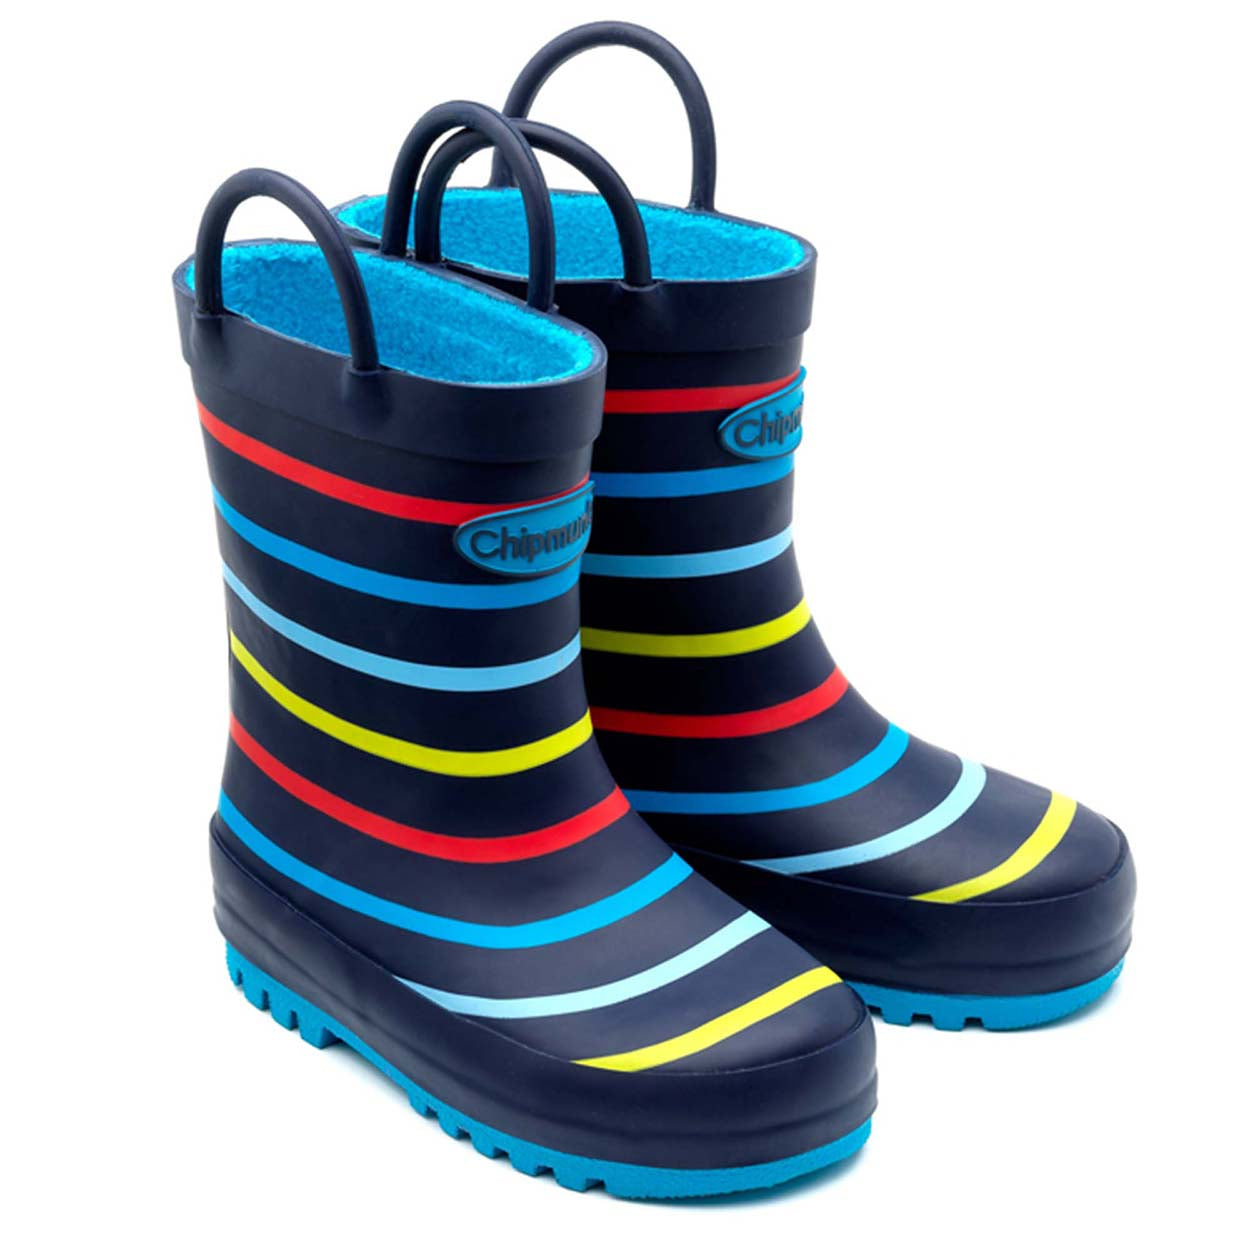 Chipmunks Multi Stripe Children's Wellies